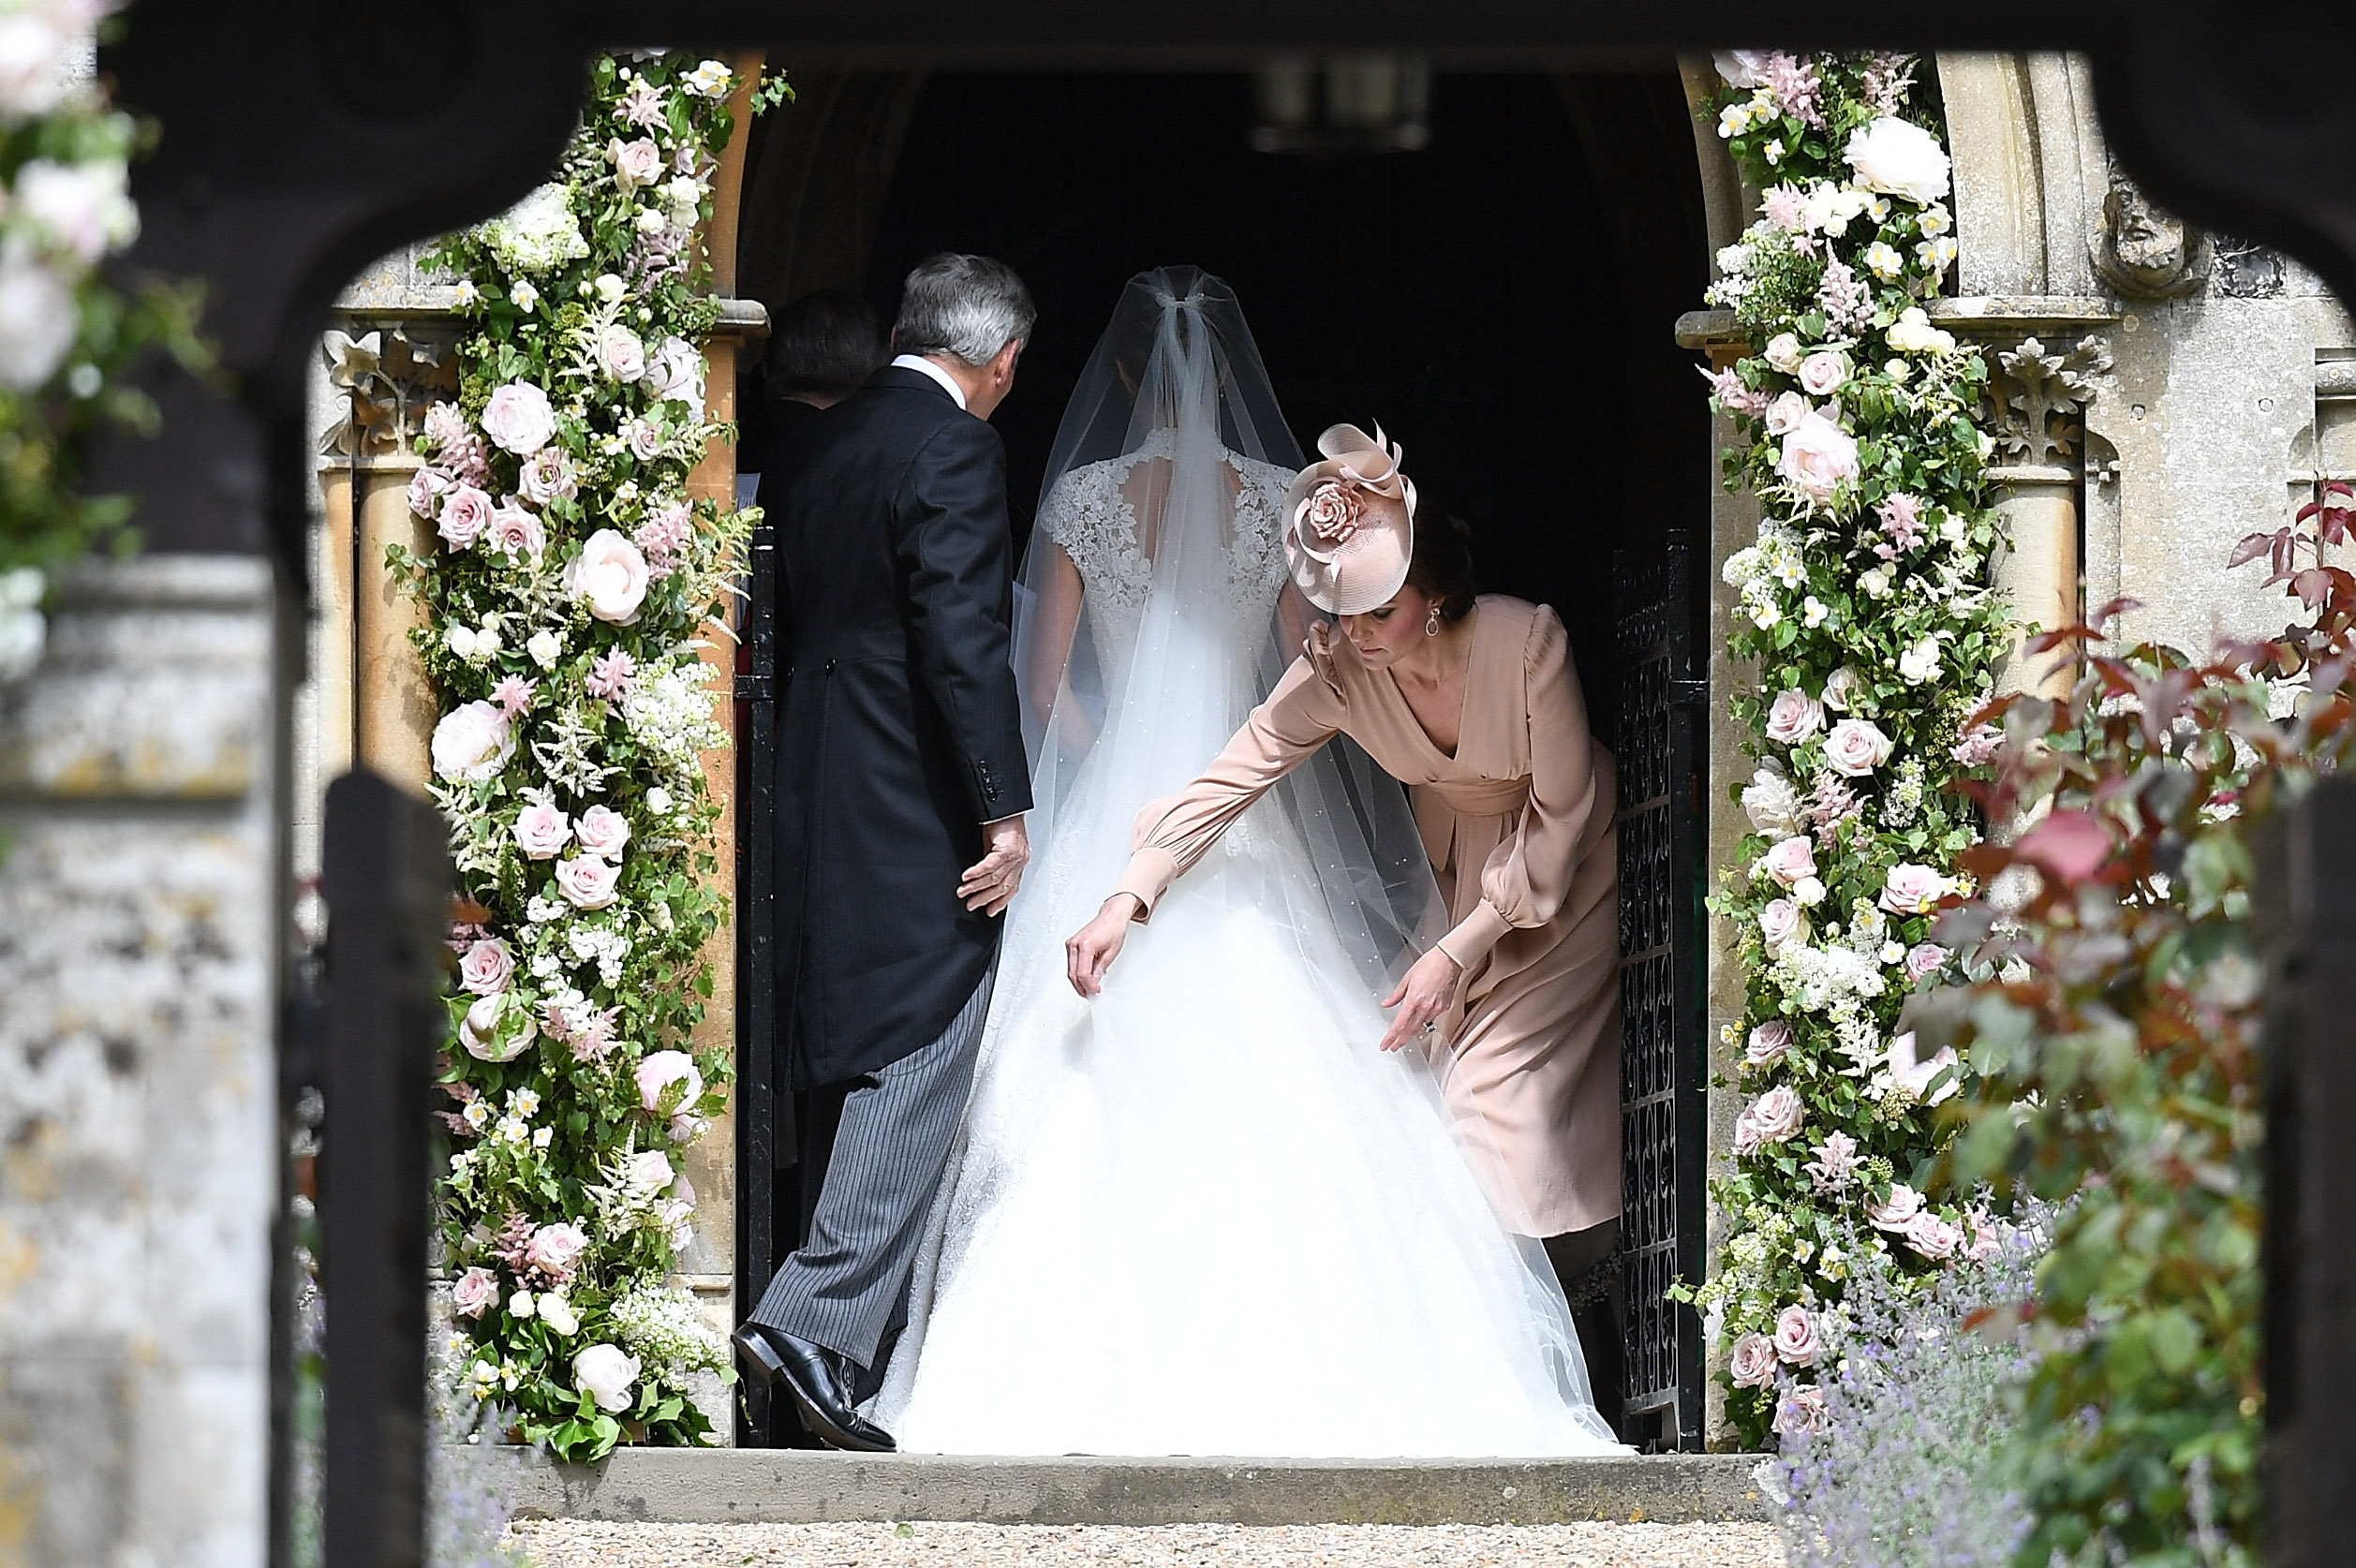 Catherine, Duchess of Cambridge adjusts the dress of Pippa Middleton as she enters the church during the wedding of Pippa Middleton and James Matthews at St Mark's Church on May 20, 2017 in Englefield Green, England.